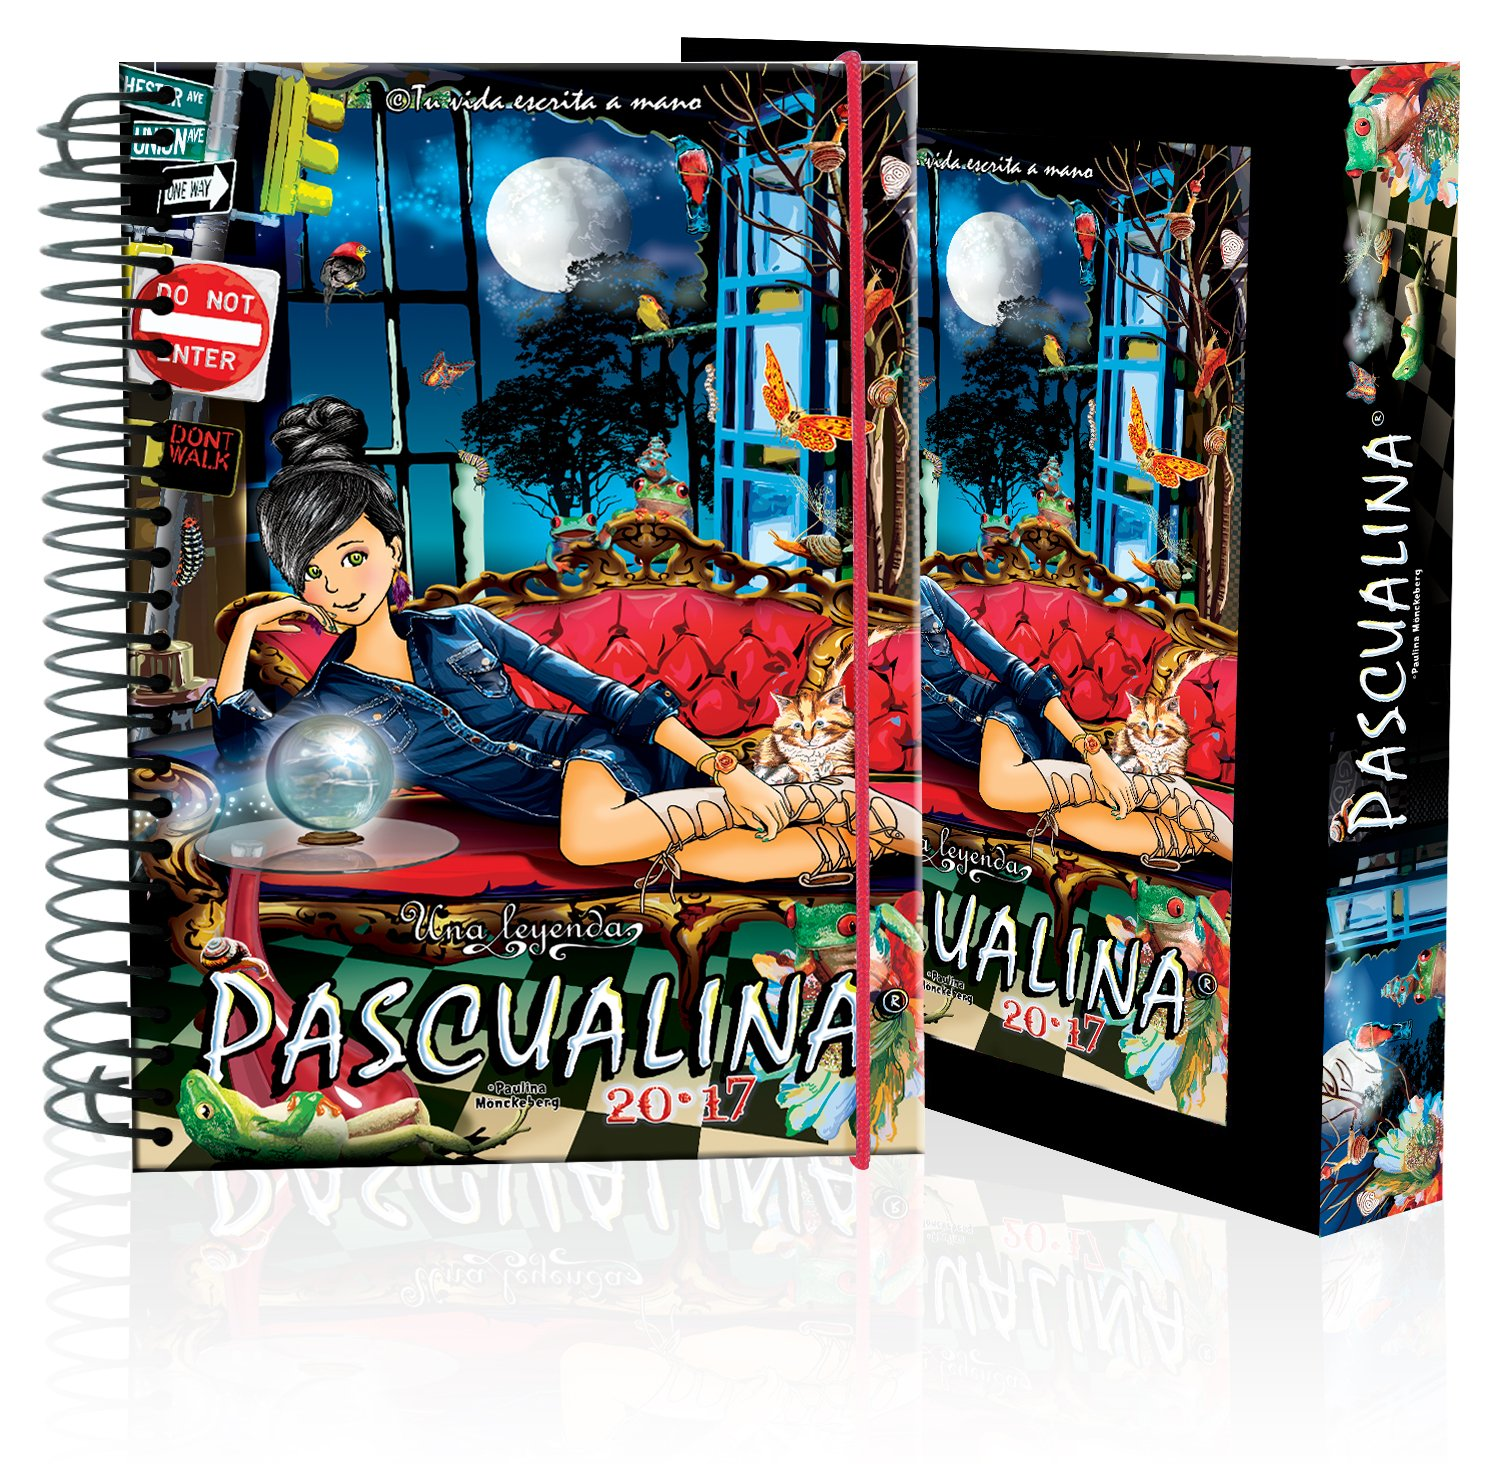 Pascualina 2017 - Eclectic Nights (Spanish) Spiral-bound – 2016